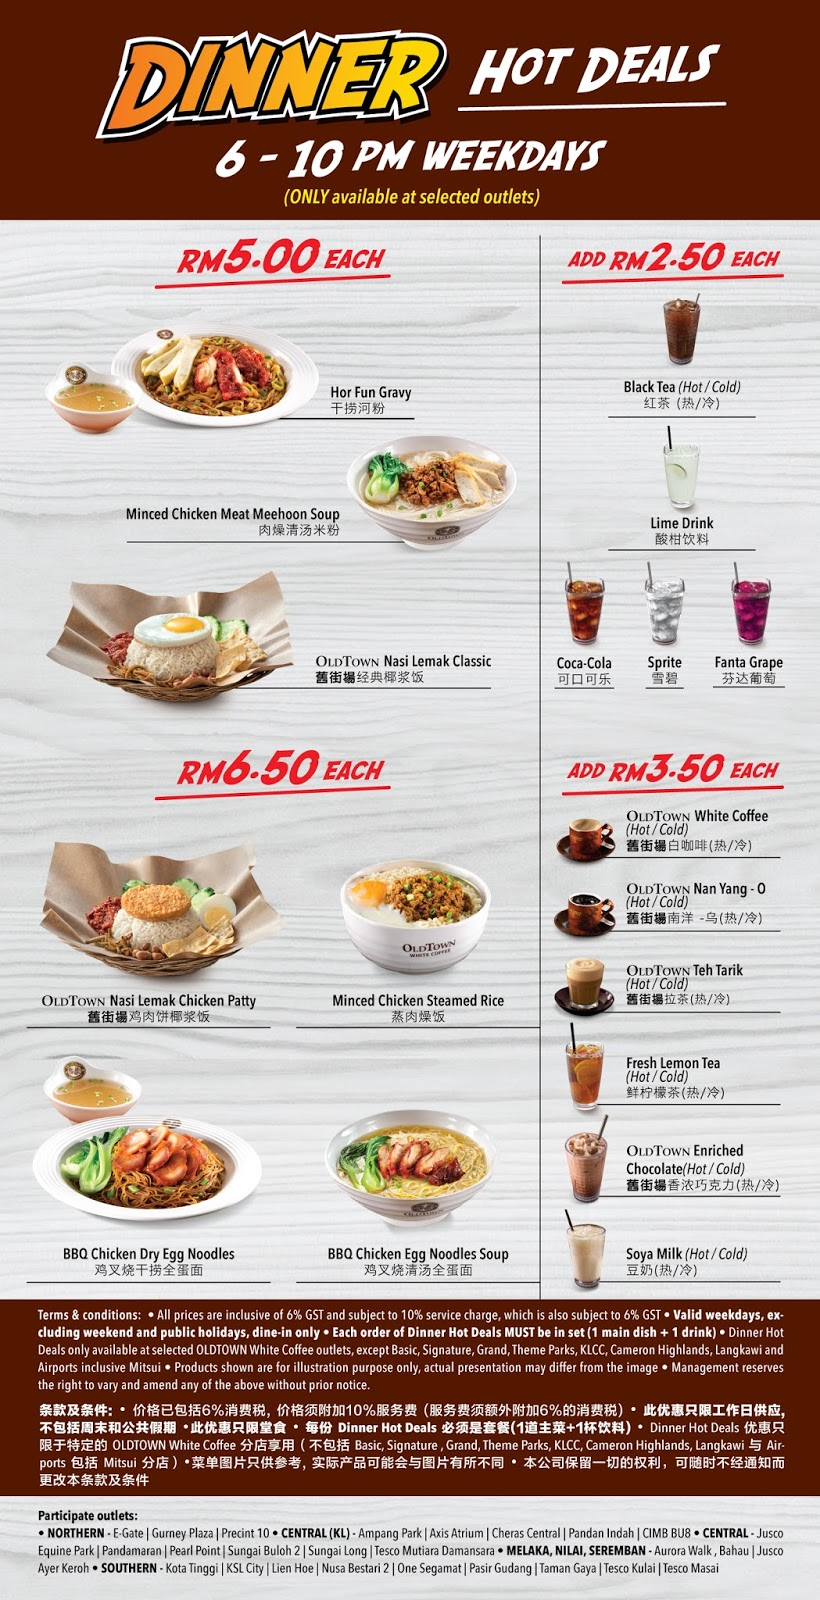 OLDTOWN White Coffee Malaysia Dinner Hot Deals Menu